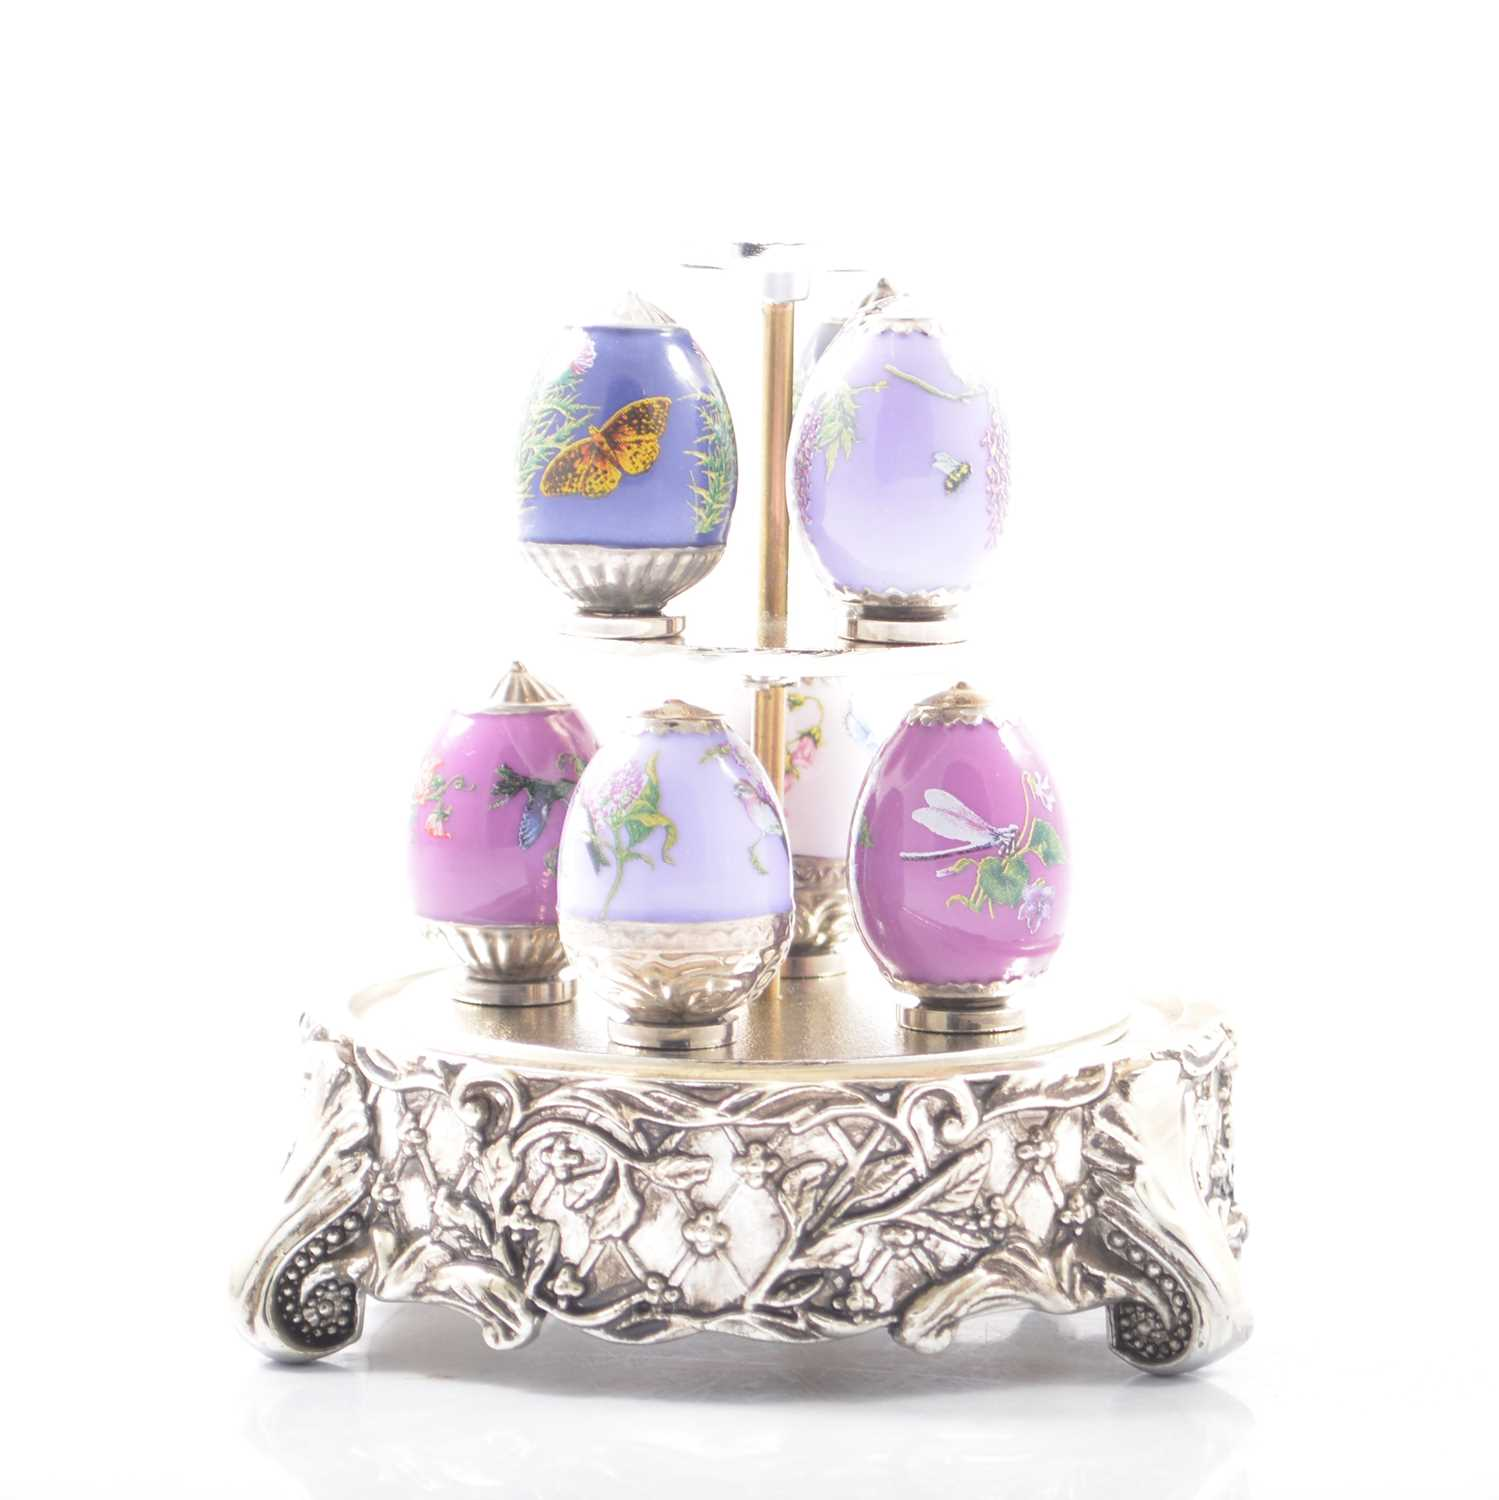 Lot 39 - House of Faberge, Amethyst Garden Mini Eggs and stand